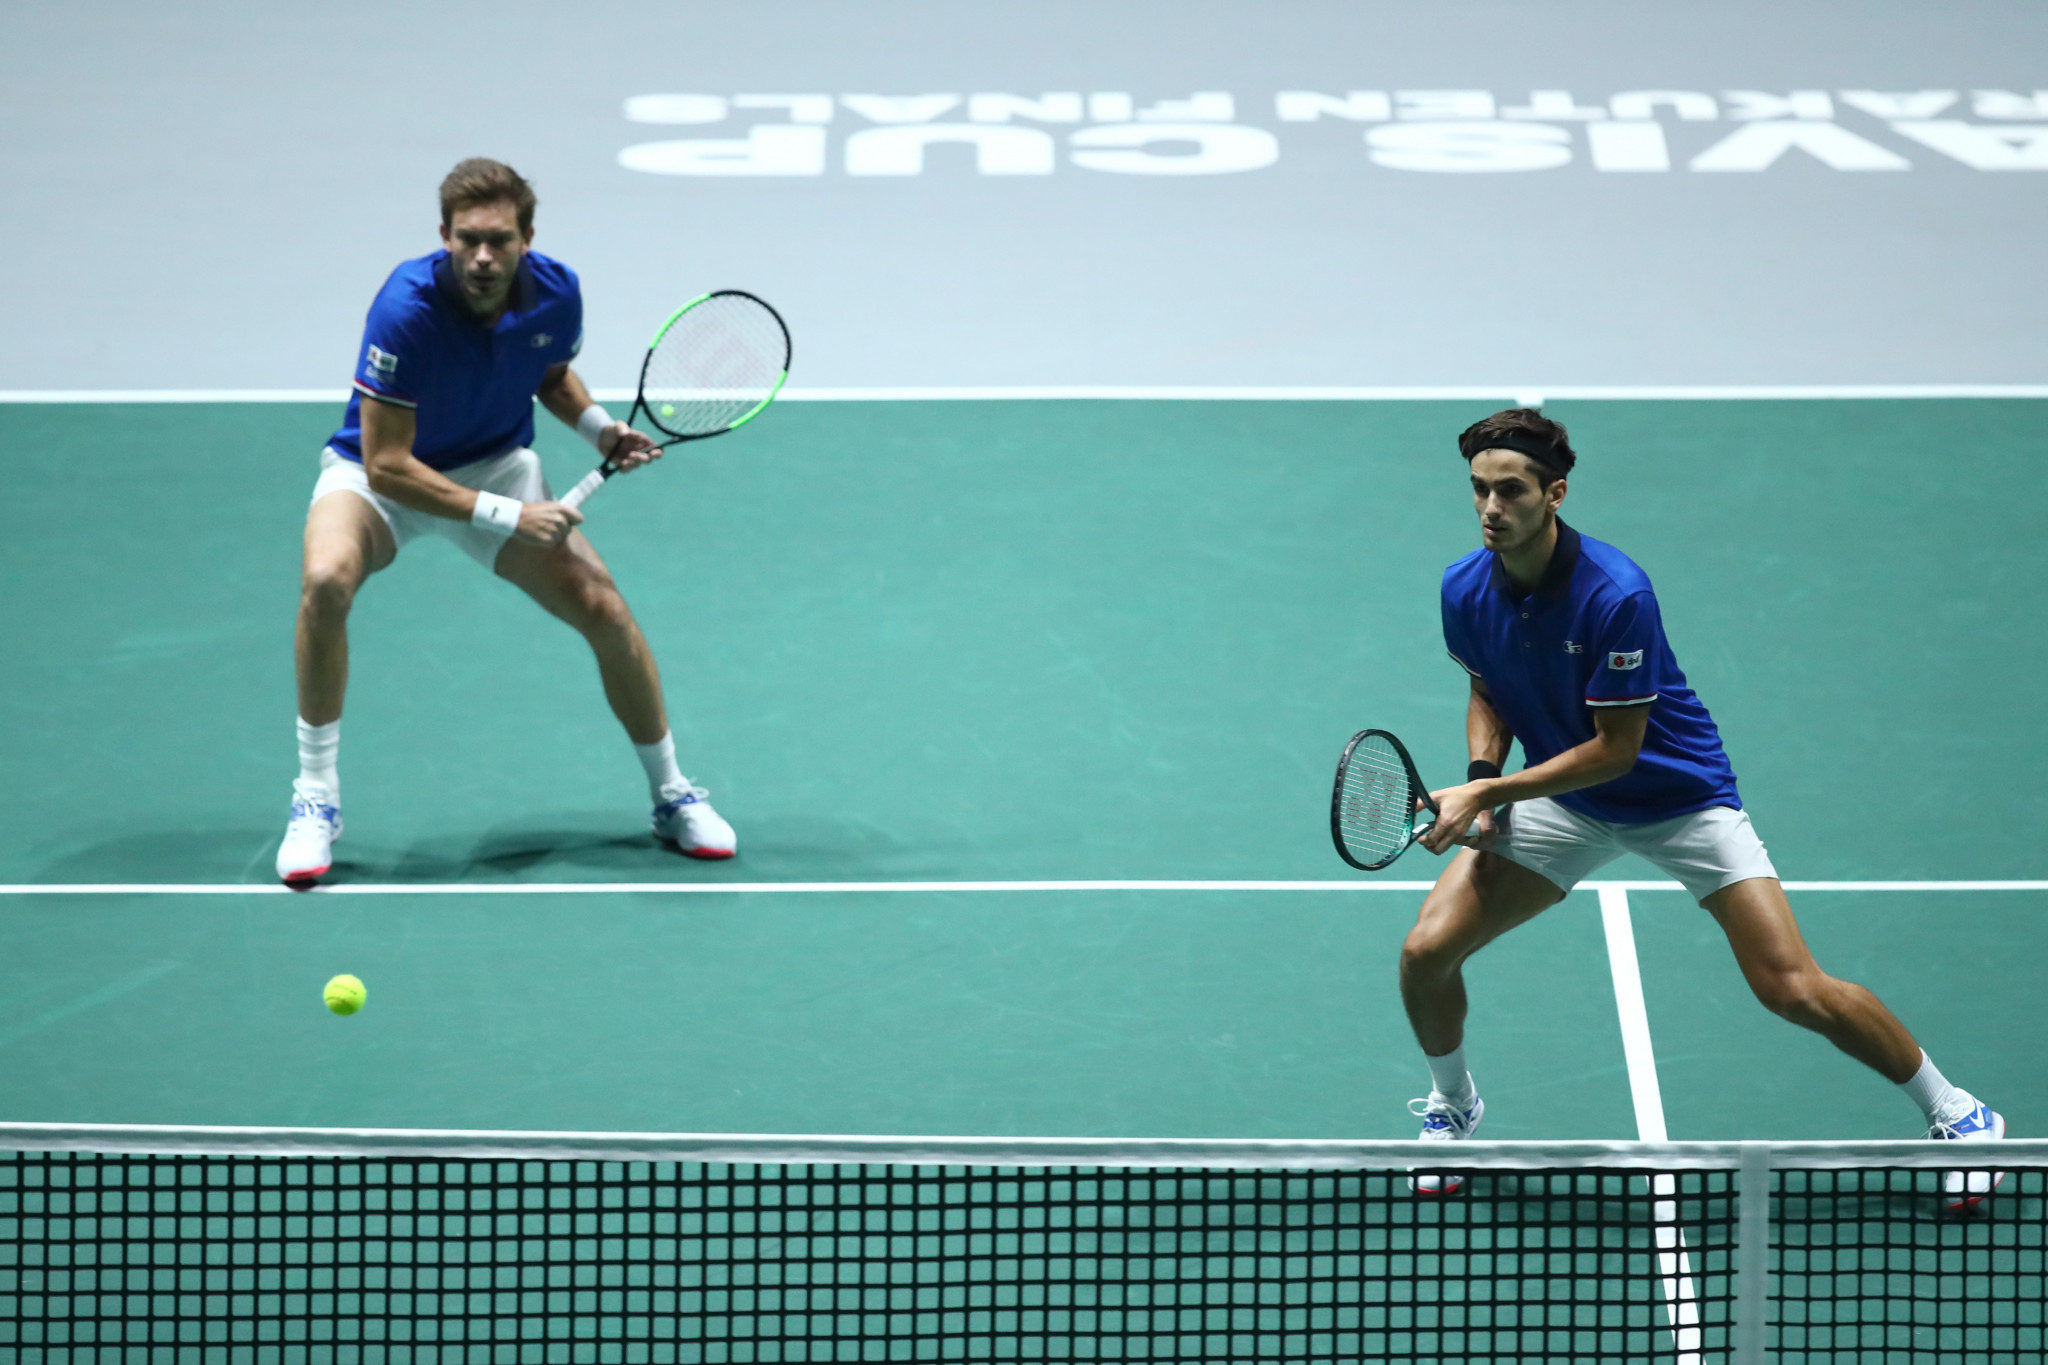 Nicolas Mahut and Pierre-Hugues Herbert helped France to a 2-1 win over Japan ©Getty Images